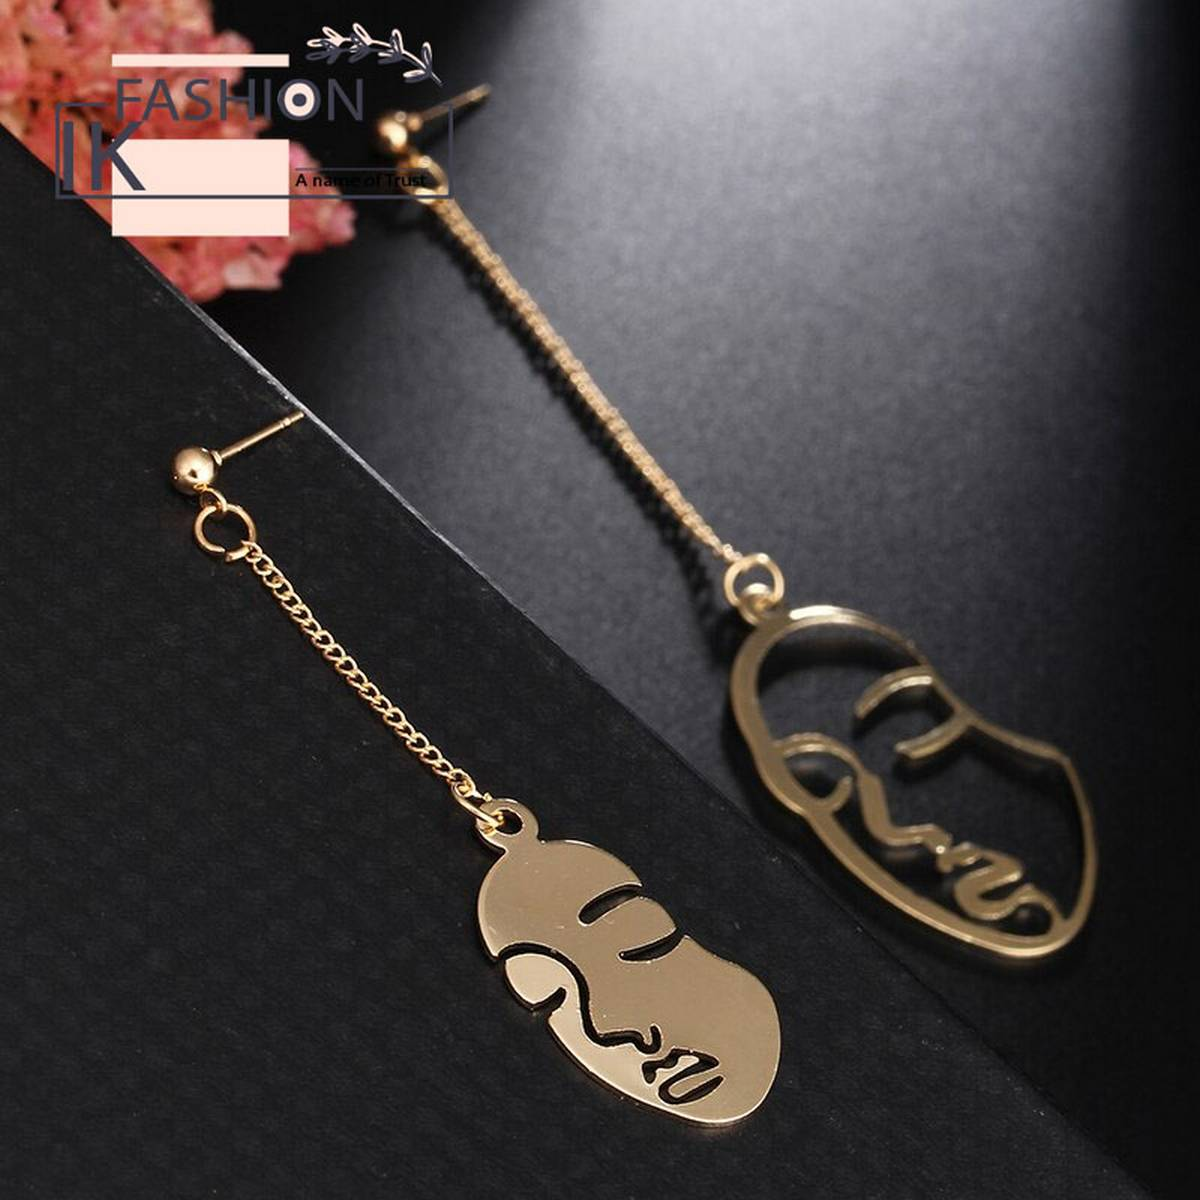 2020 New Abstract Stylish Hollow Out Face Dangle Earring Charming Face Dangle Wire Long Outline Earrings Women Gift Asymmetry